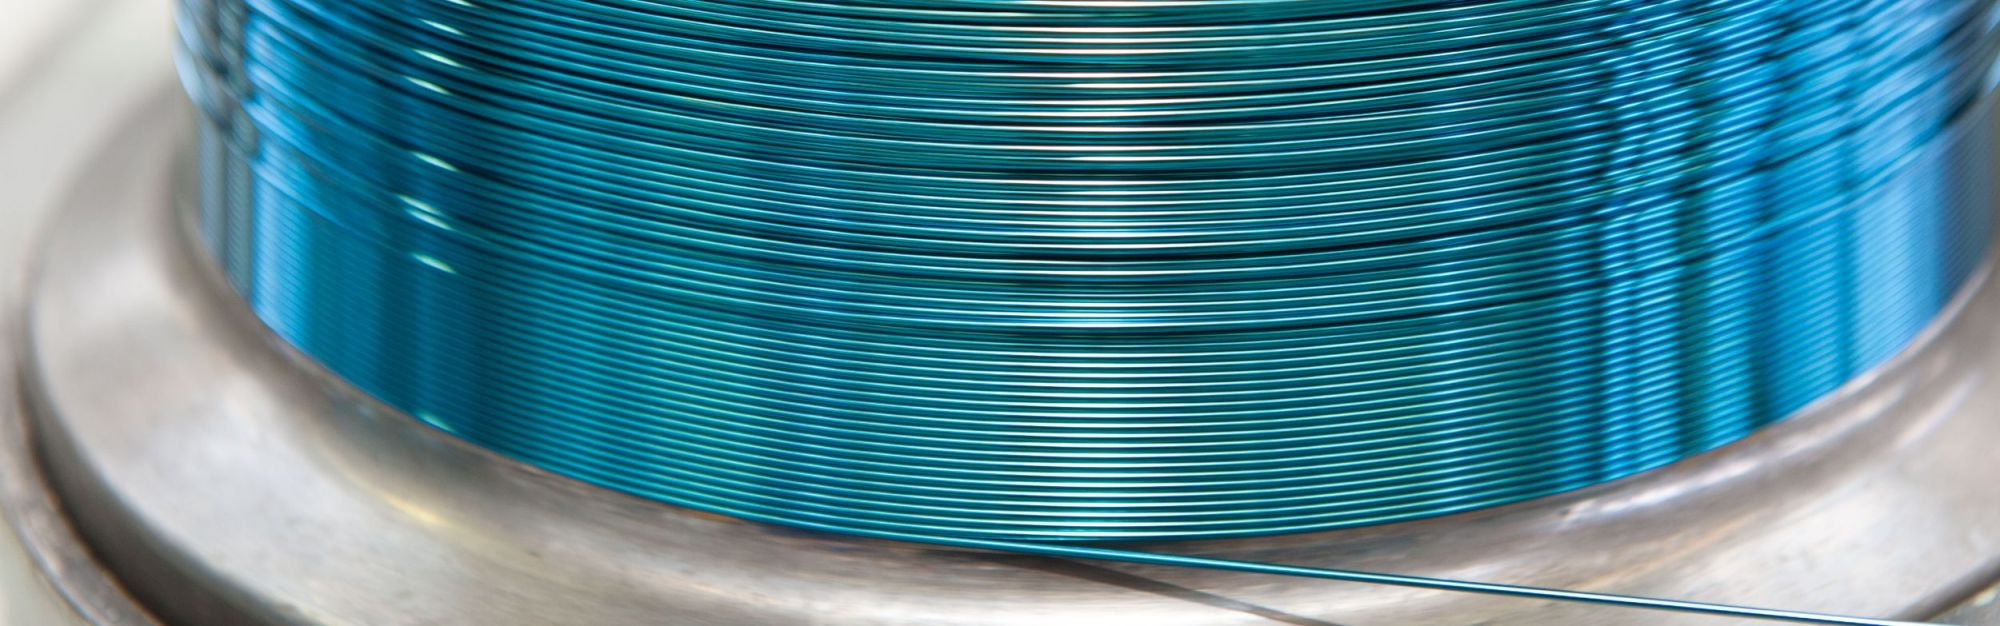 hight resolution of niobium wire